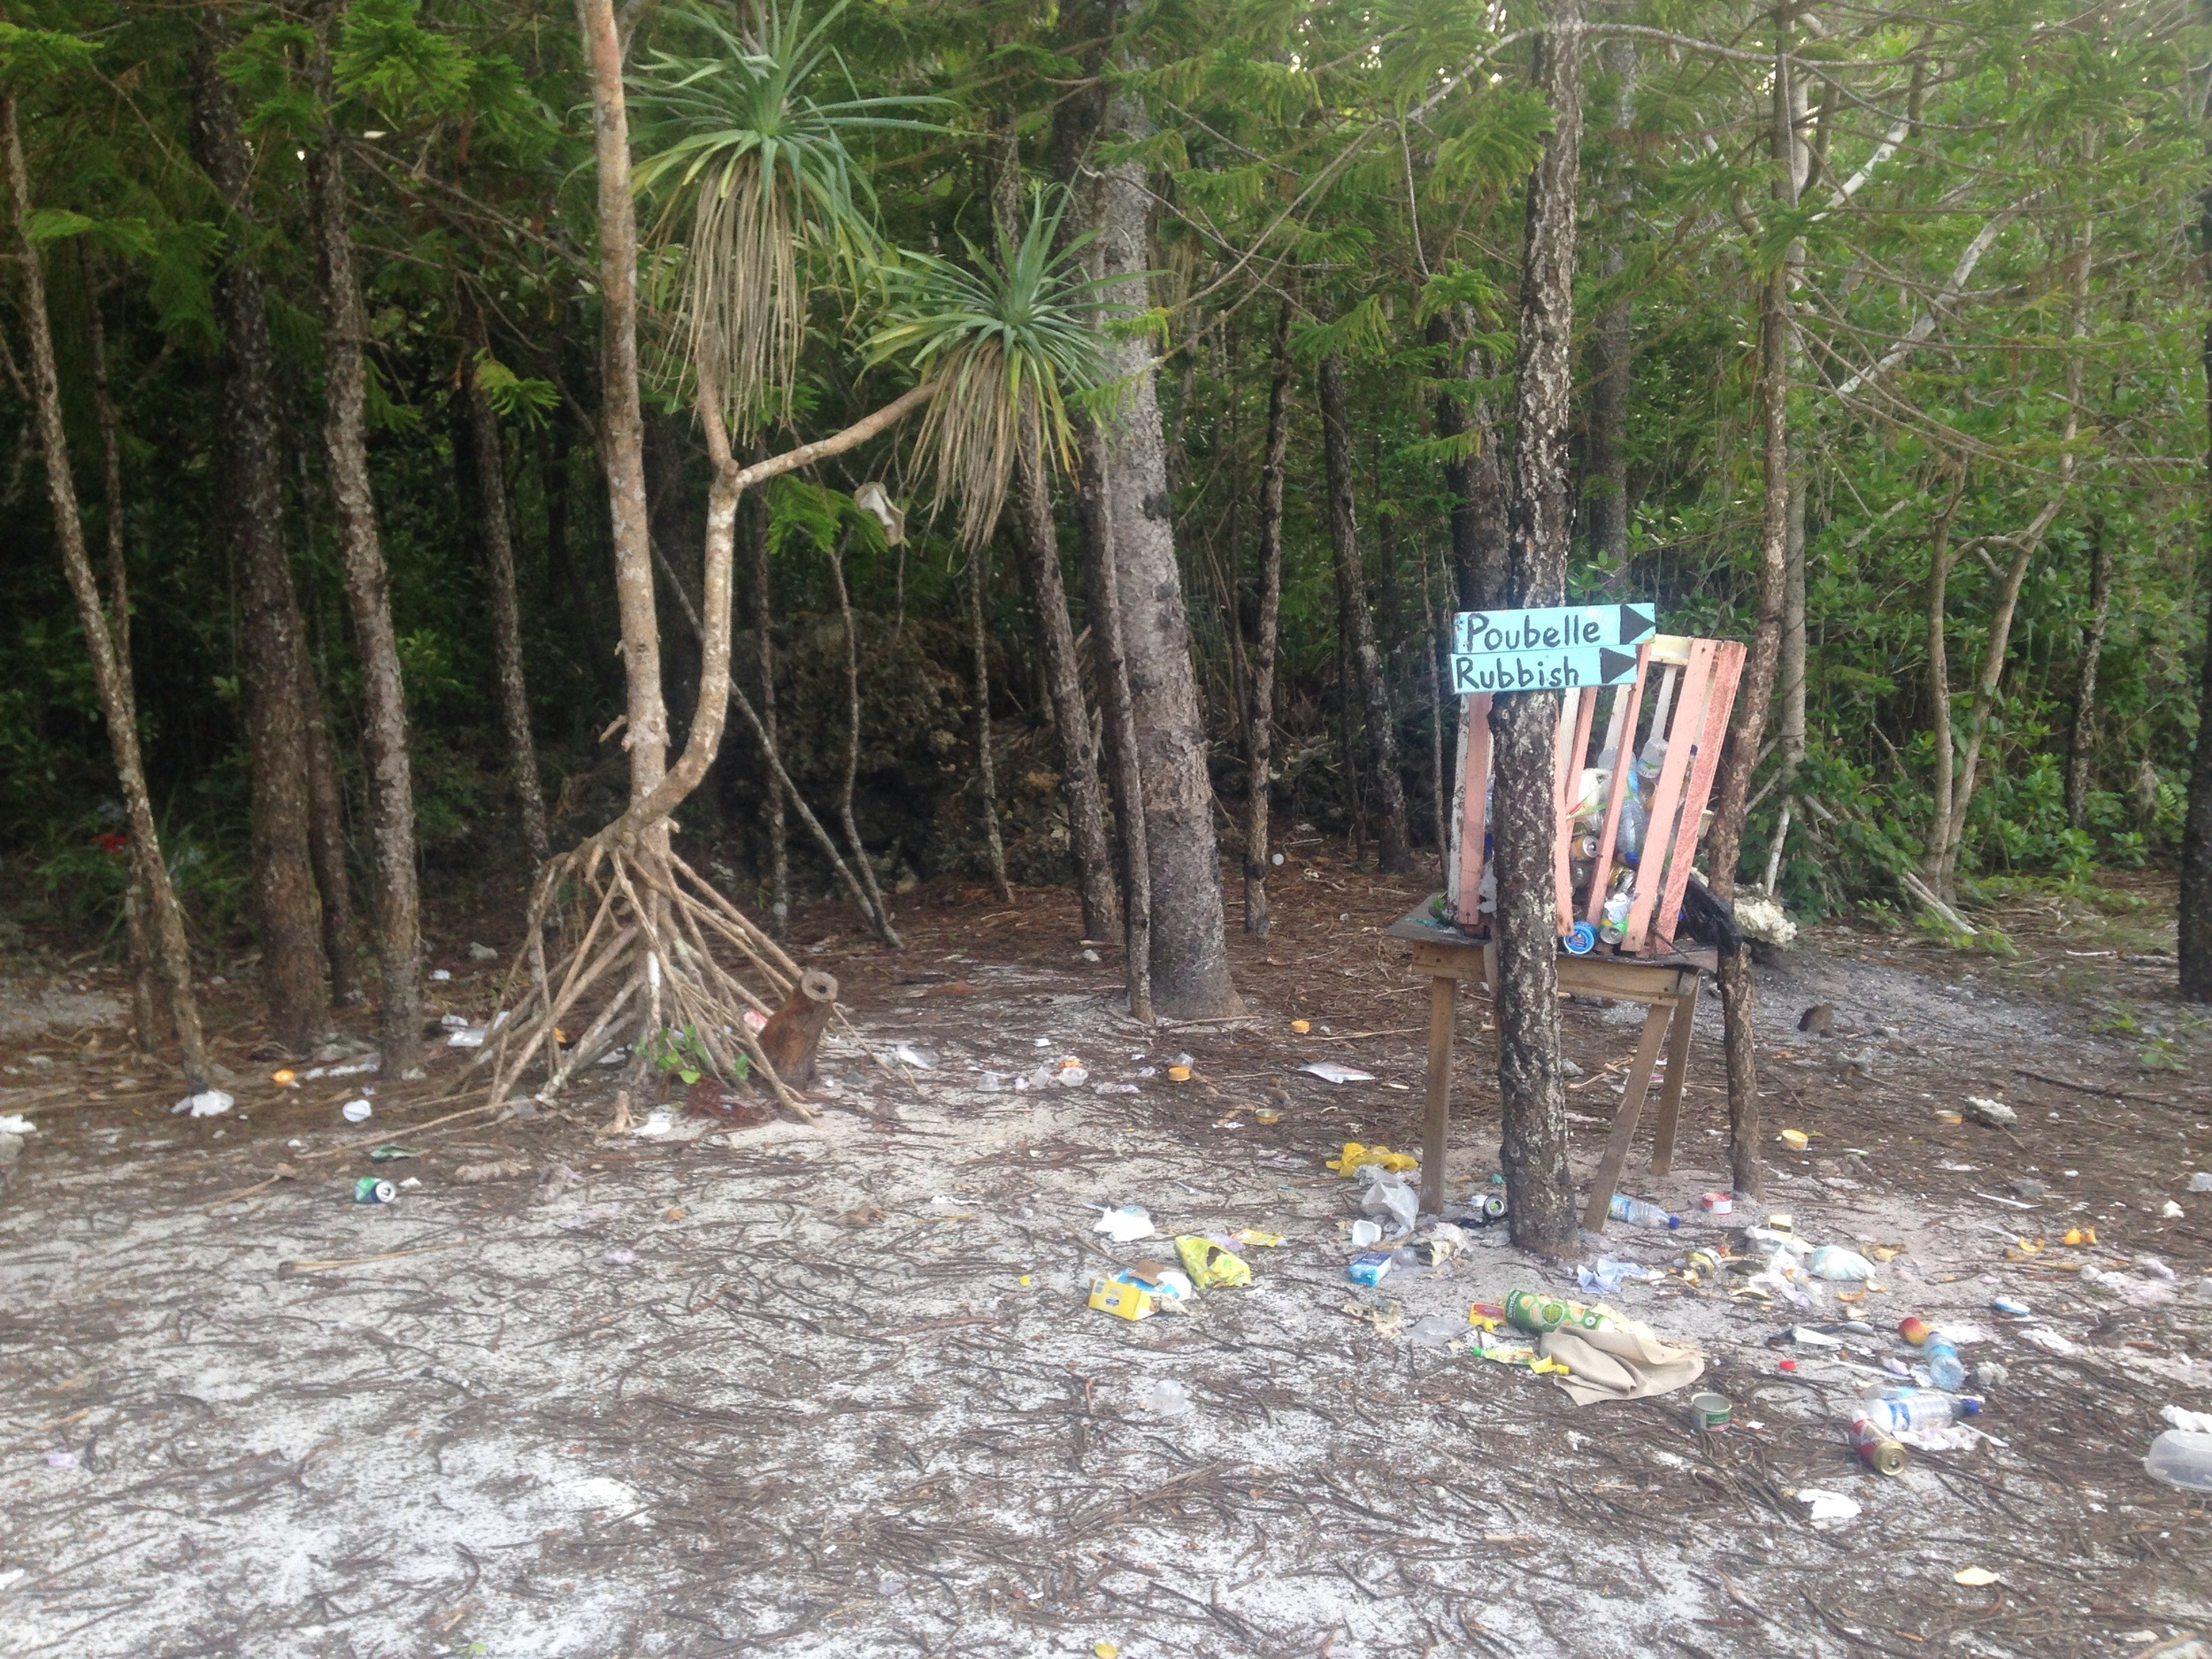 Disposal of the indisposable. Isle of Pine, New Caledonia.